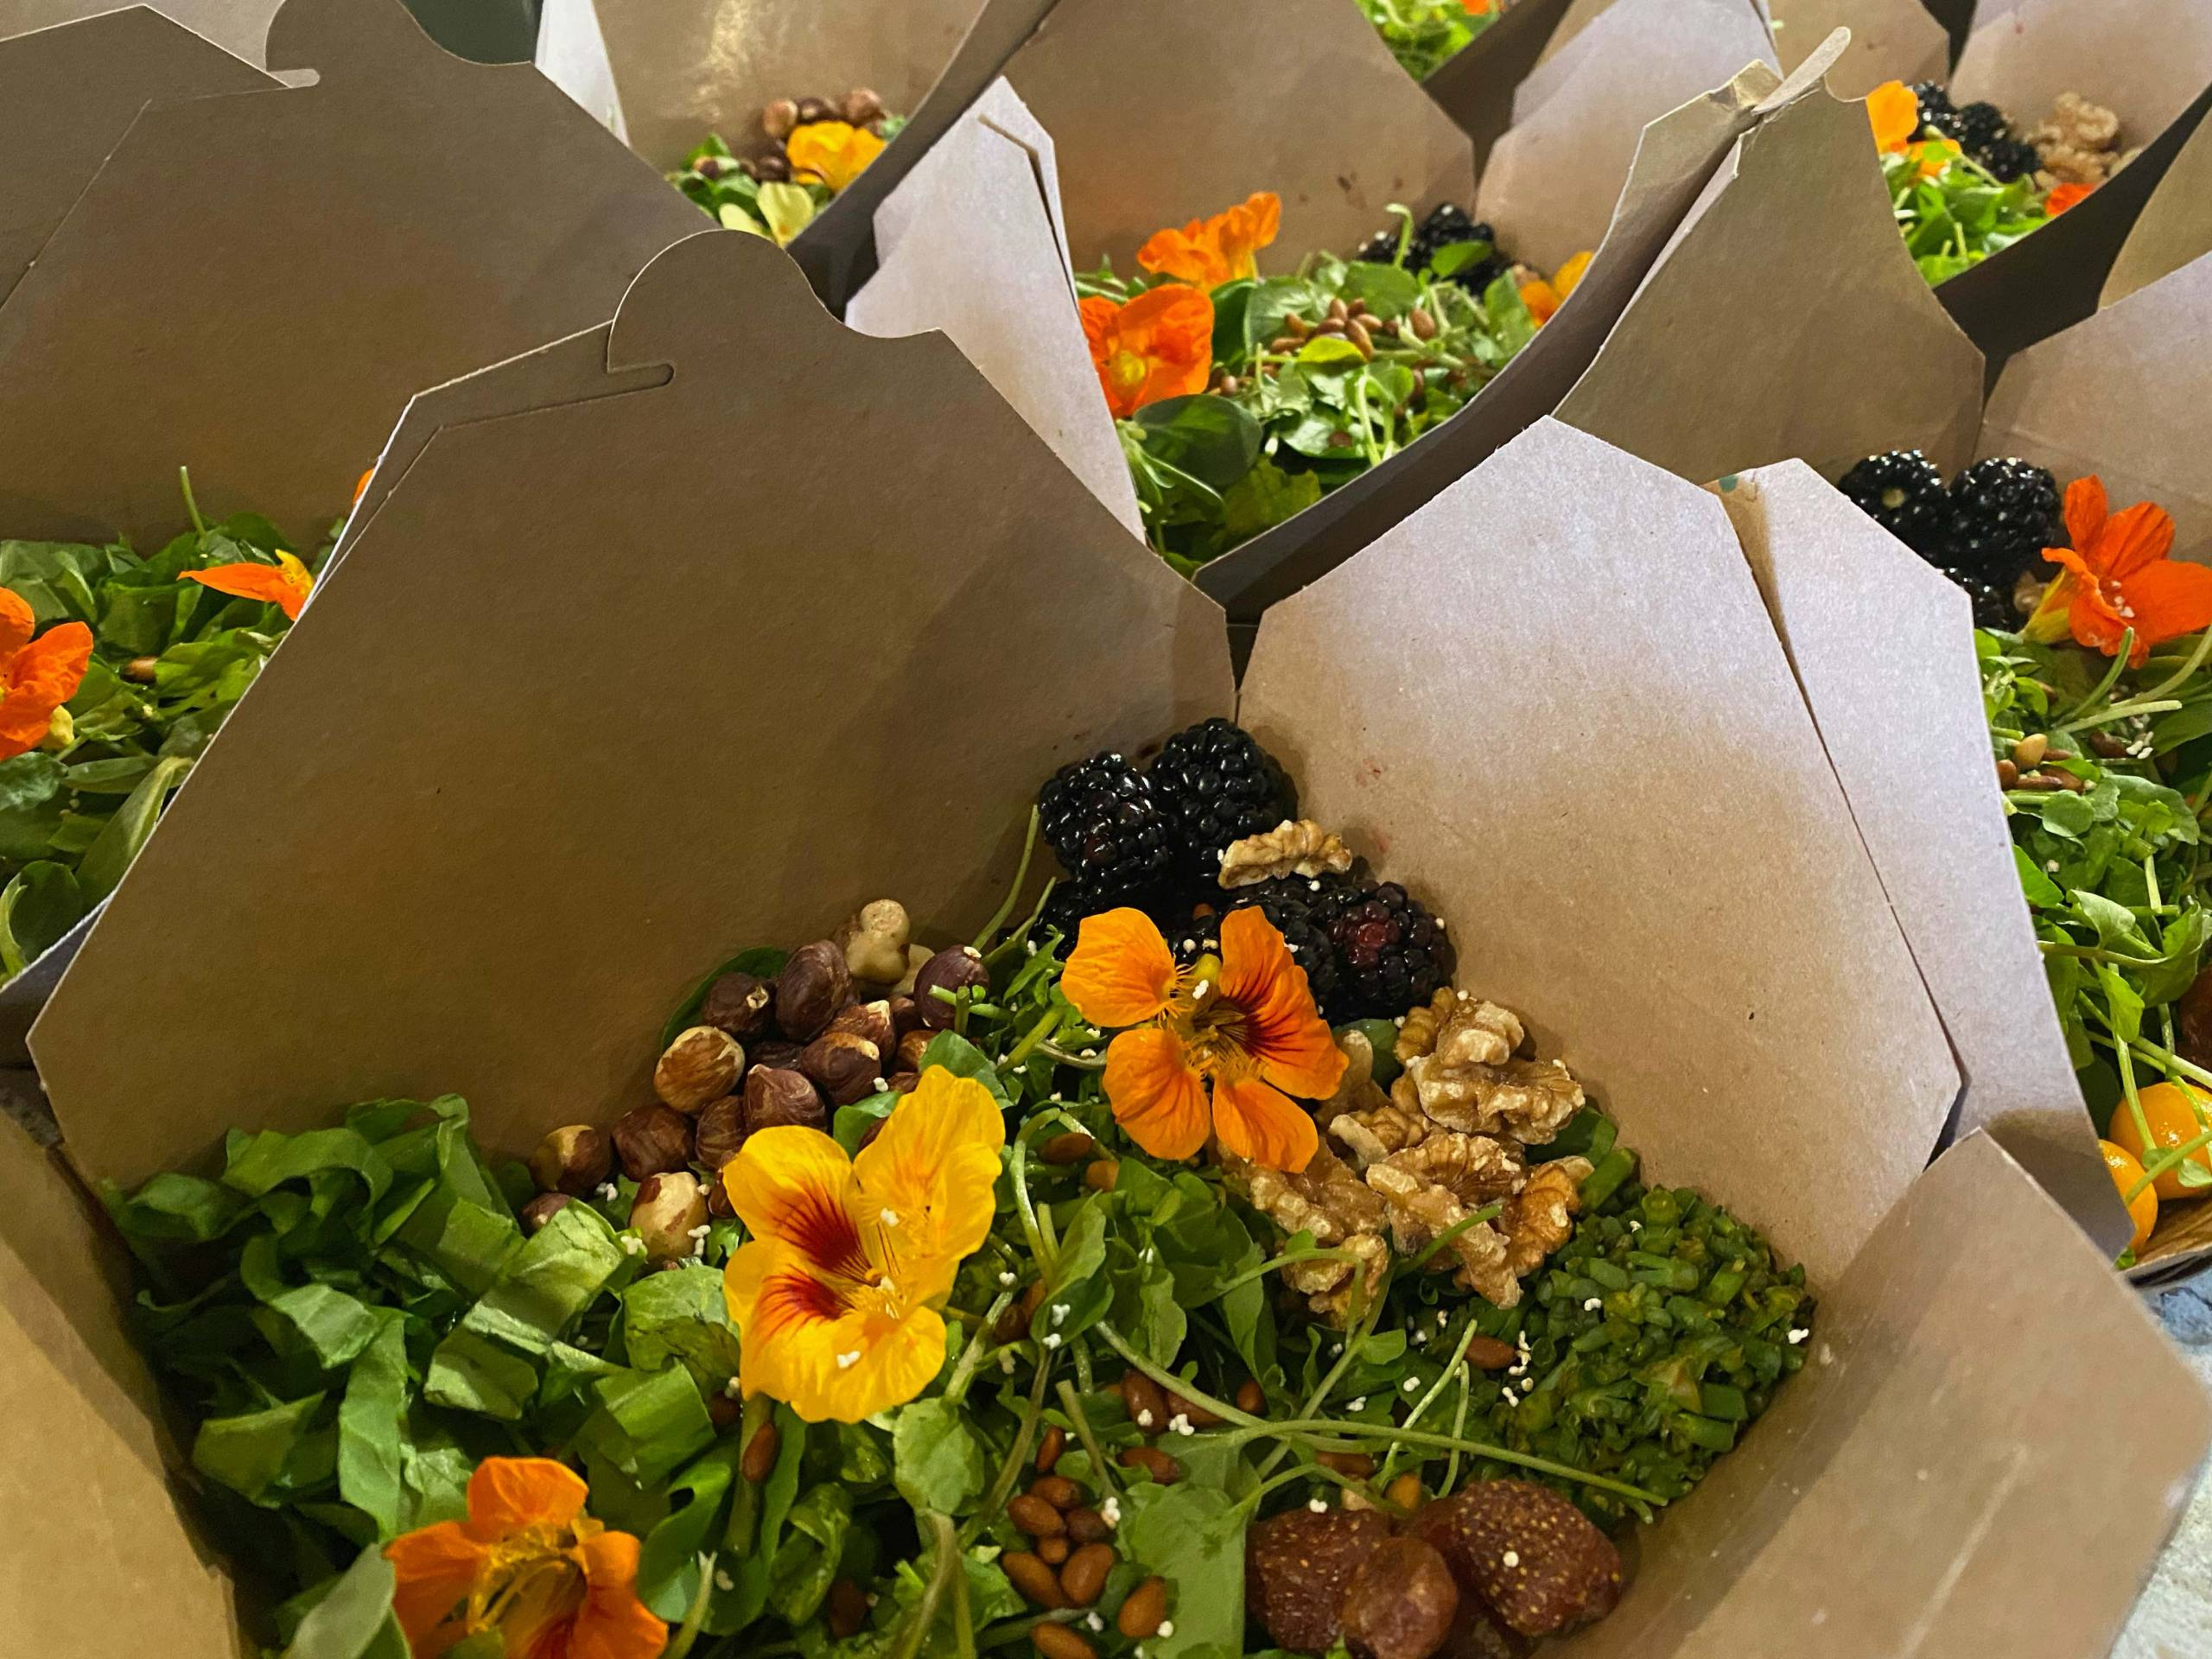 An Ohlone salad in a cardboard takeout box, with bright orange edible flowers and locally gathered greens and nuts.